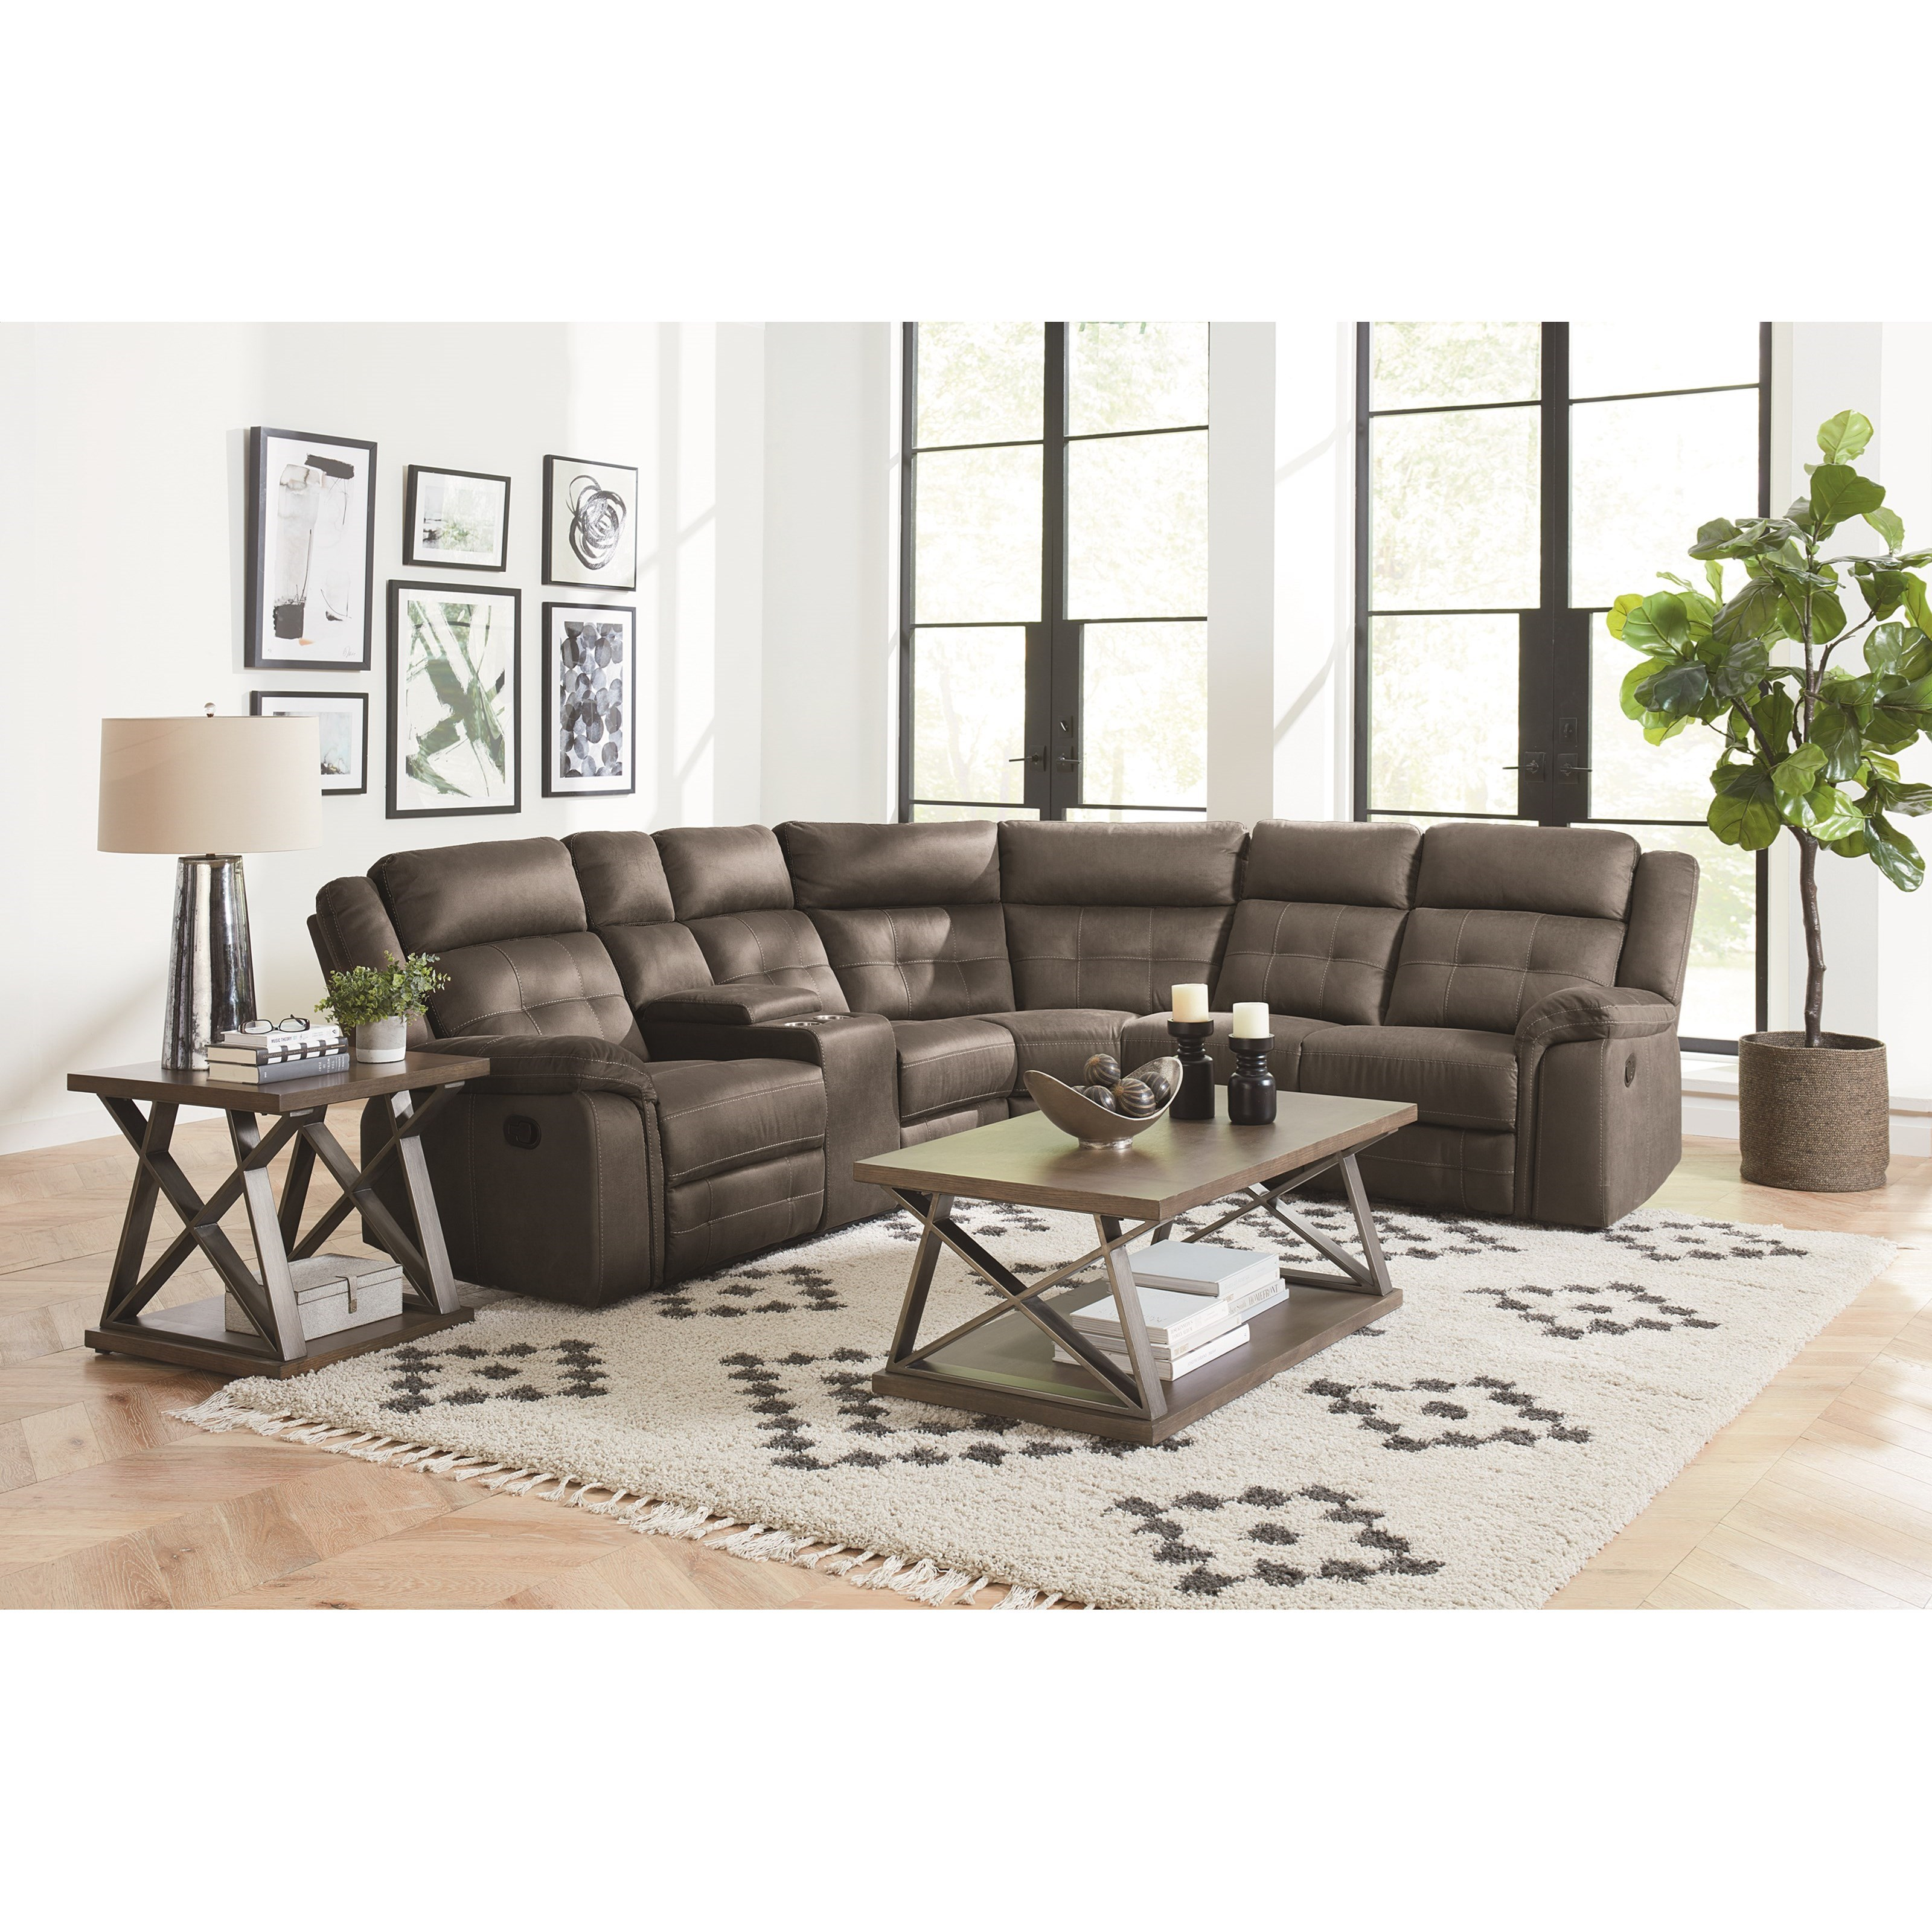 Excellent El Paso Manual Reclining Sectional Sofa Pdpeps Interior Chair Design Pdpepsorg